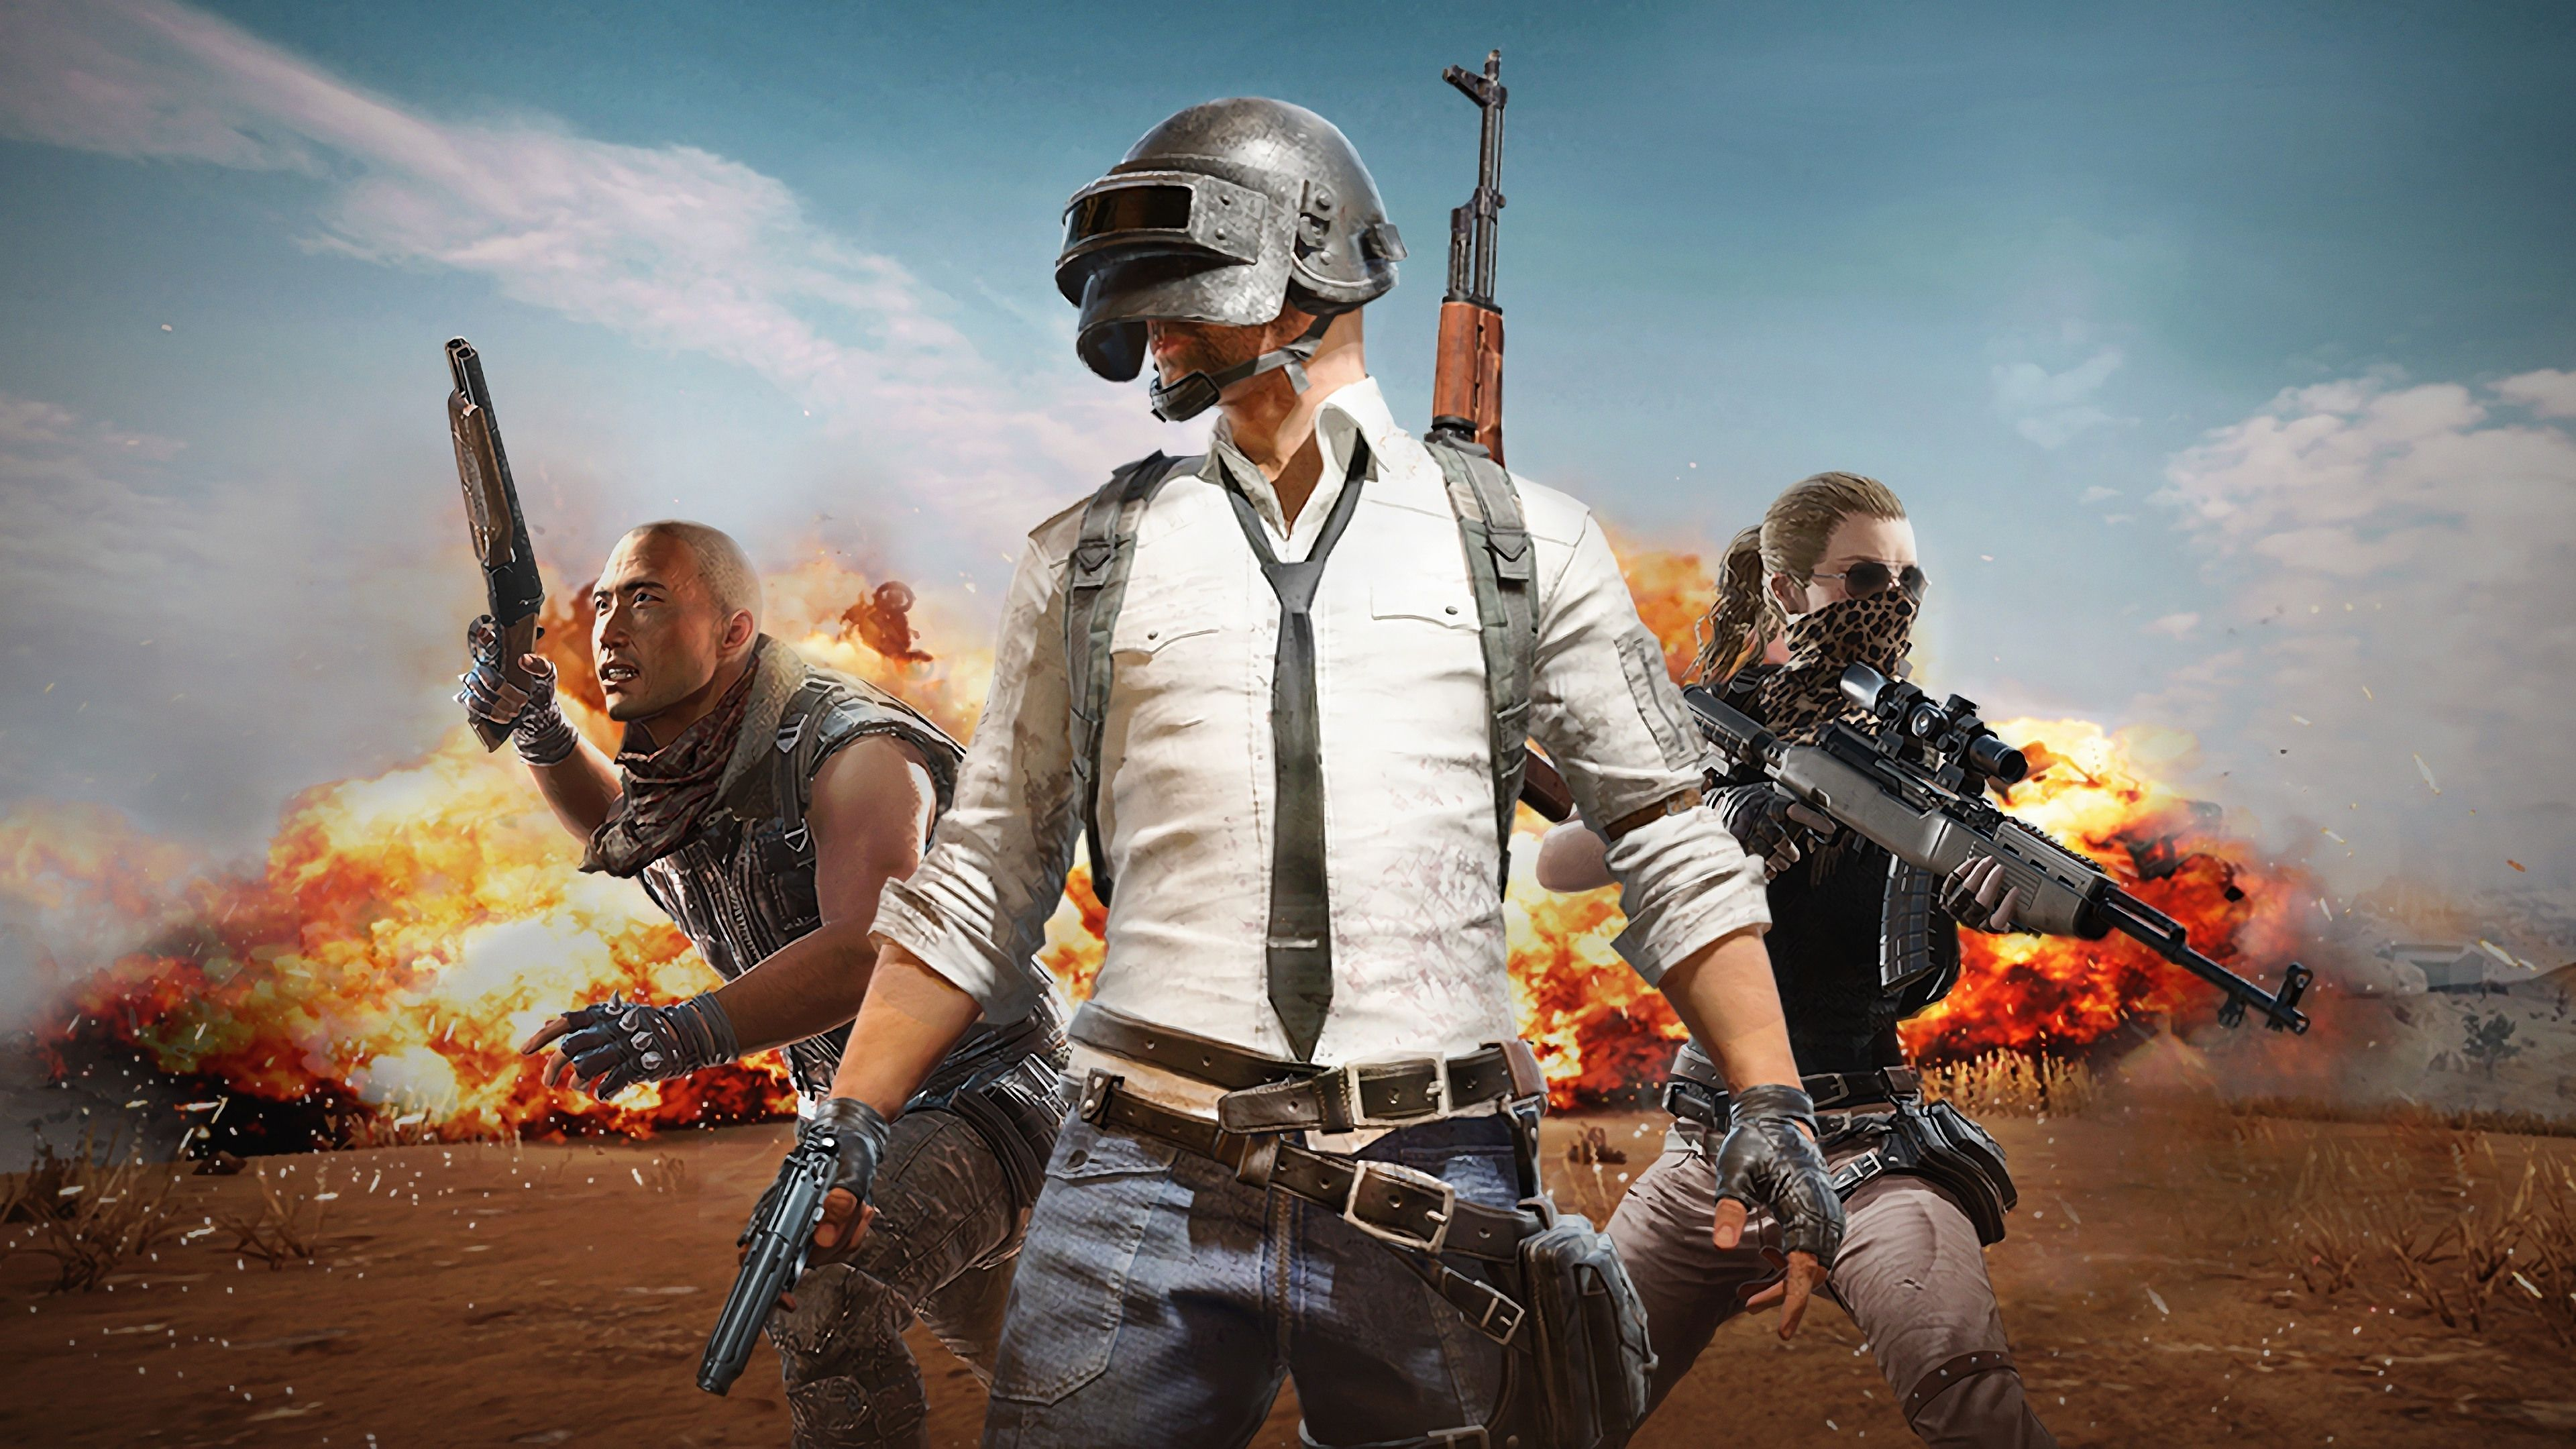 Pubg 4k Game Art Pubg Wallpapers, Playerunknowns